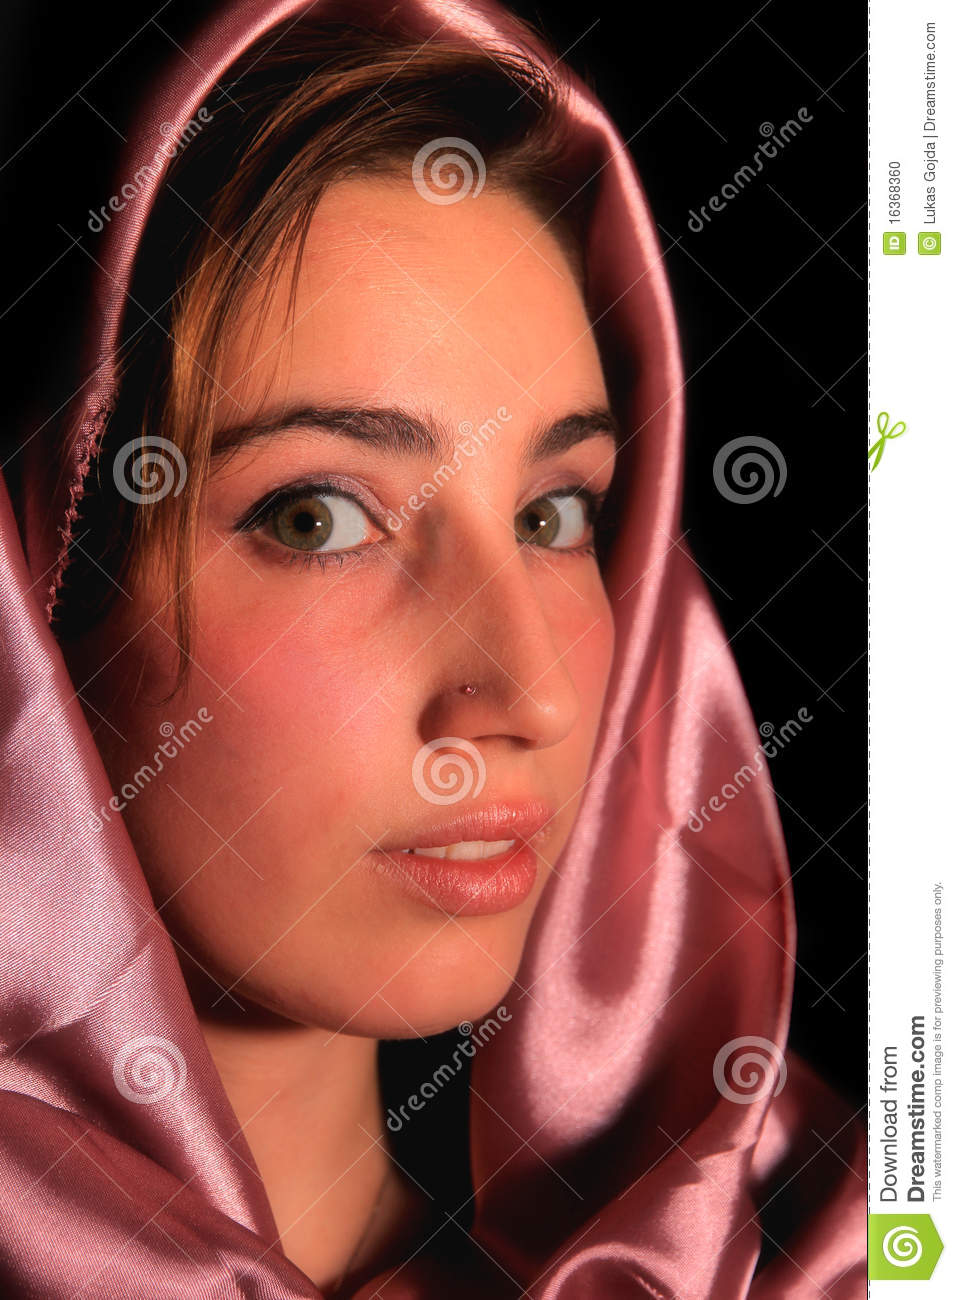 arabic girl stock photo. image of person, diversity, look - 16368360